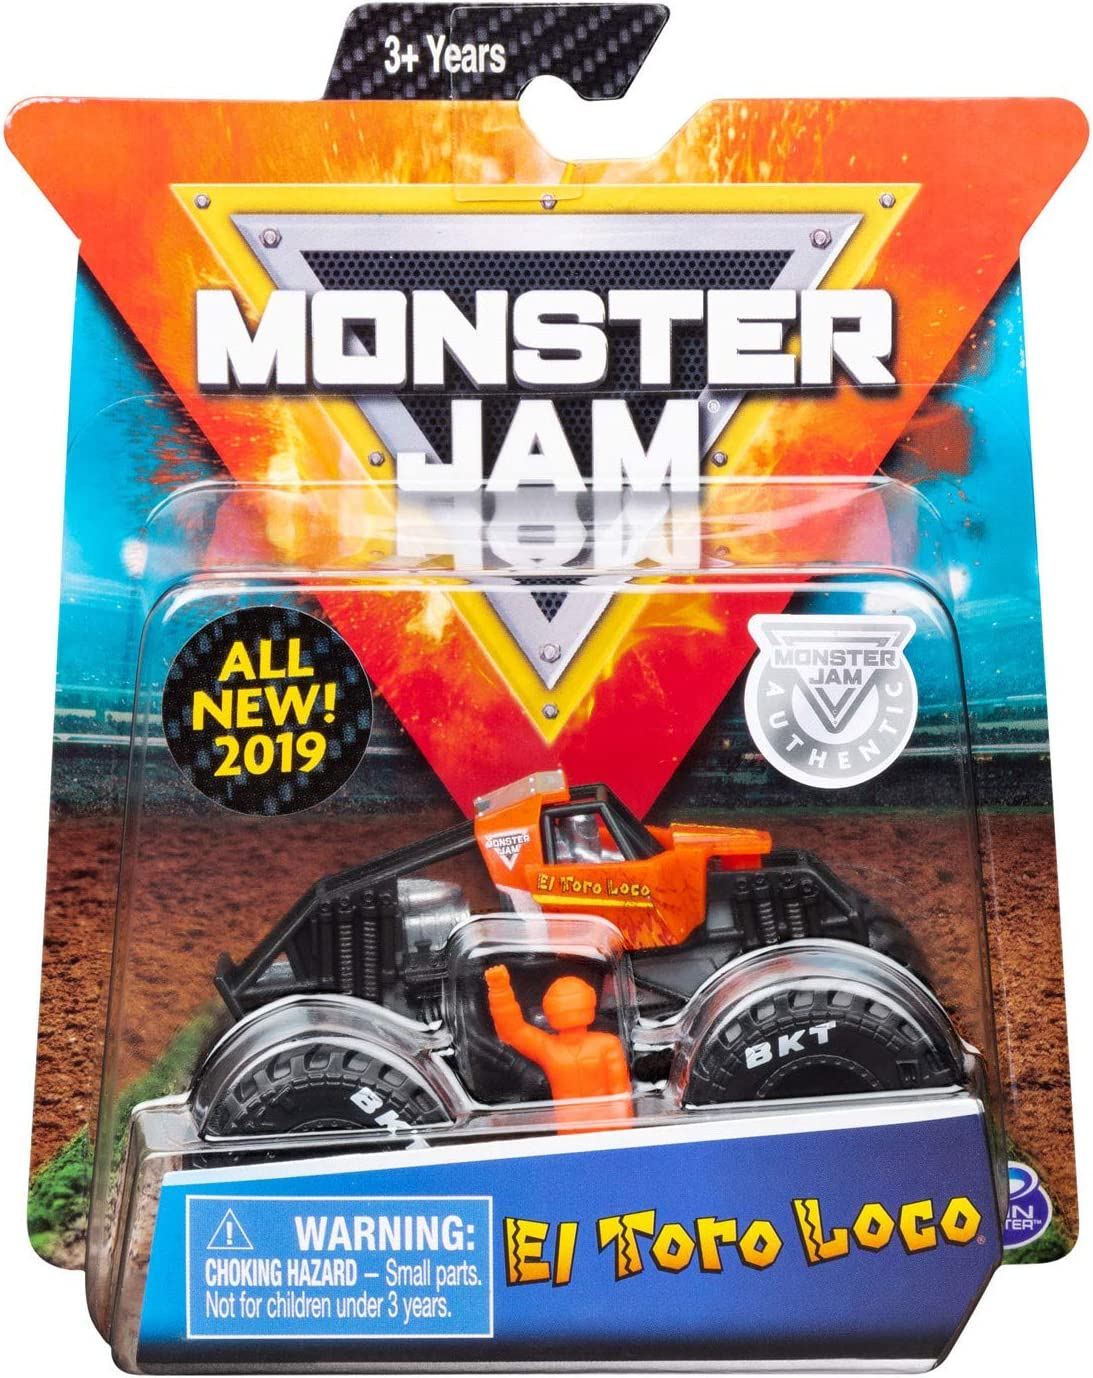 Monster Jam 2019 Training Trucks El Toro Loco 1:64 Scale Diecast Monster Truck with Figure and Poster by Spin Master